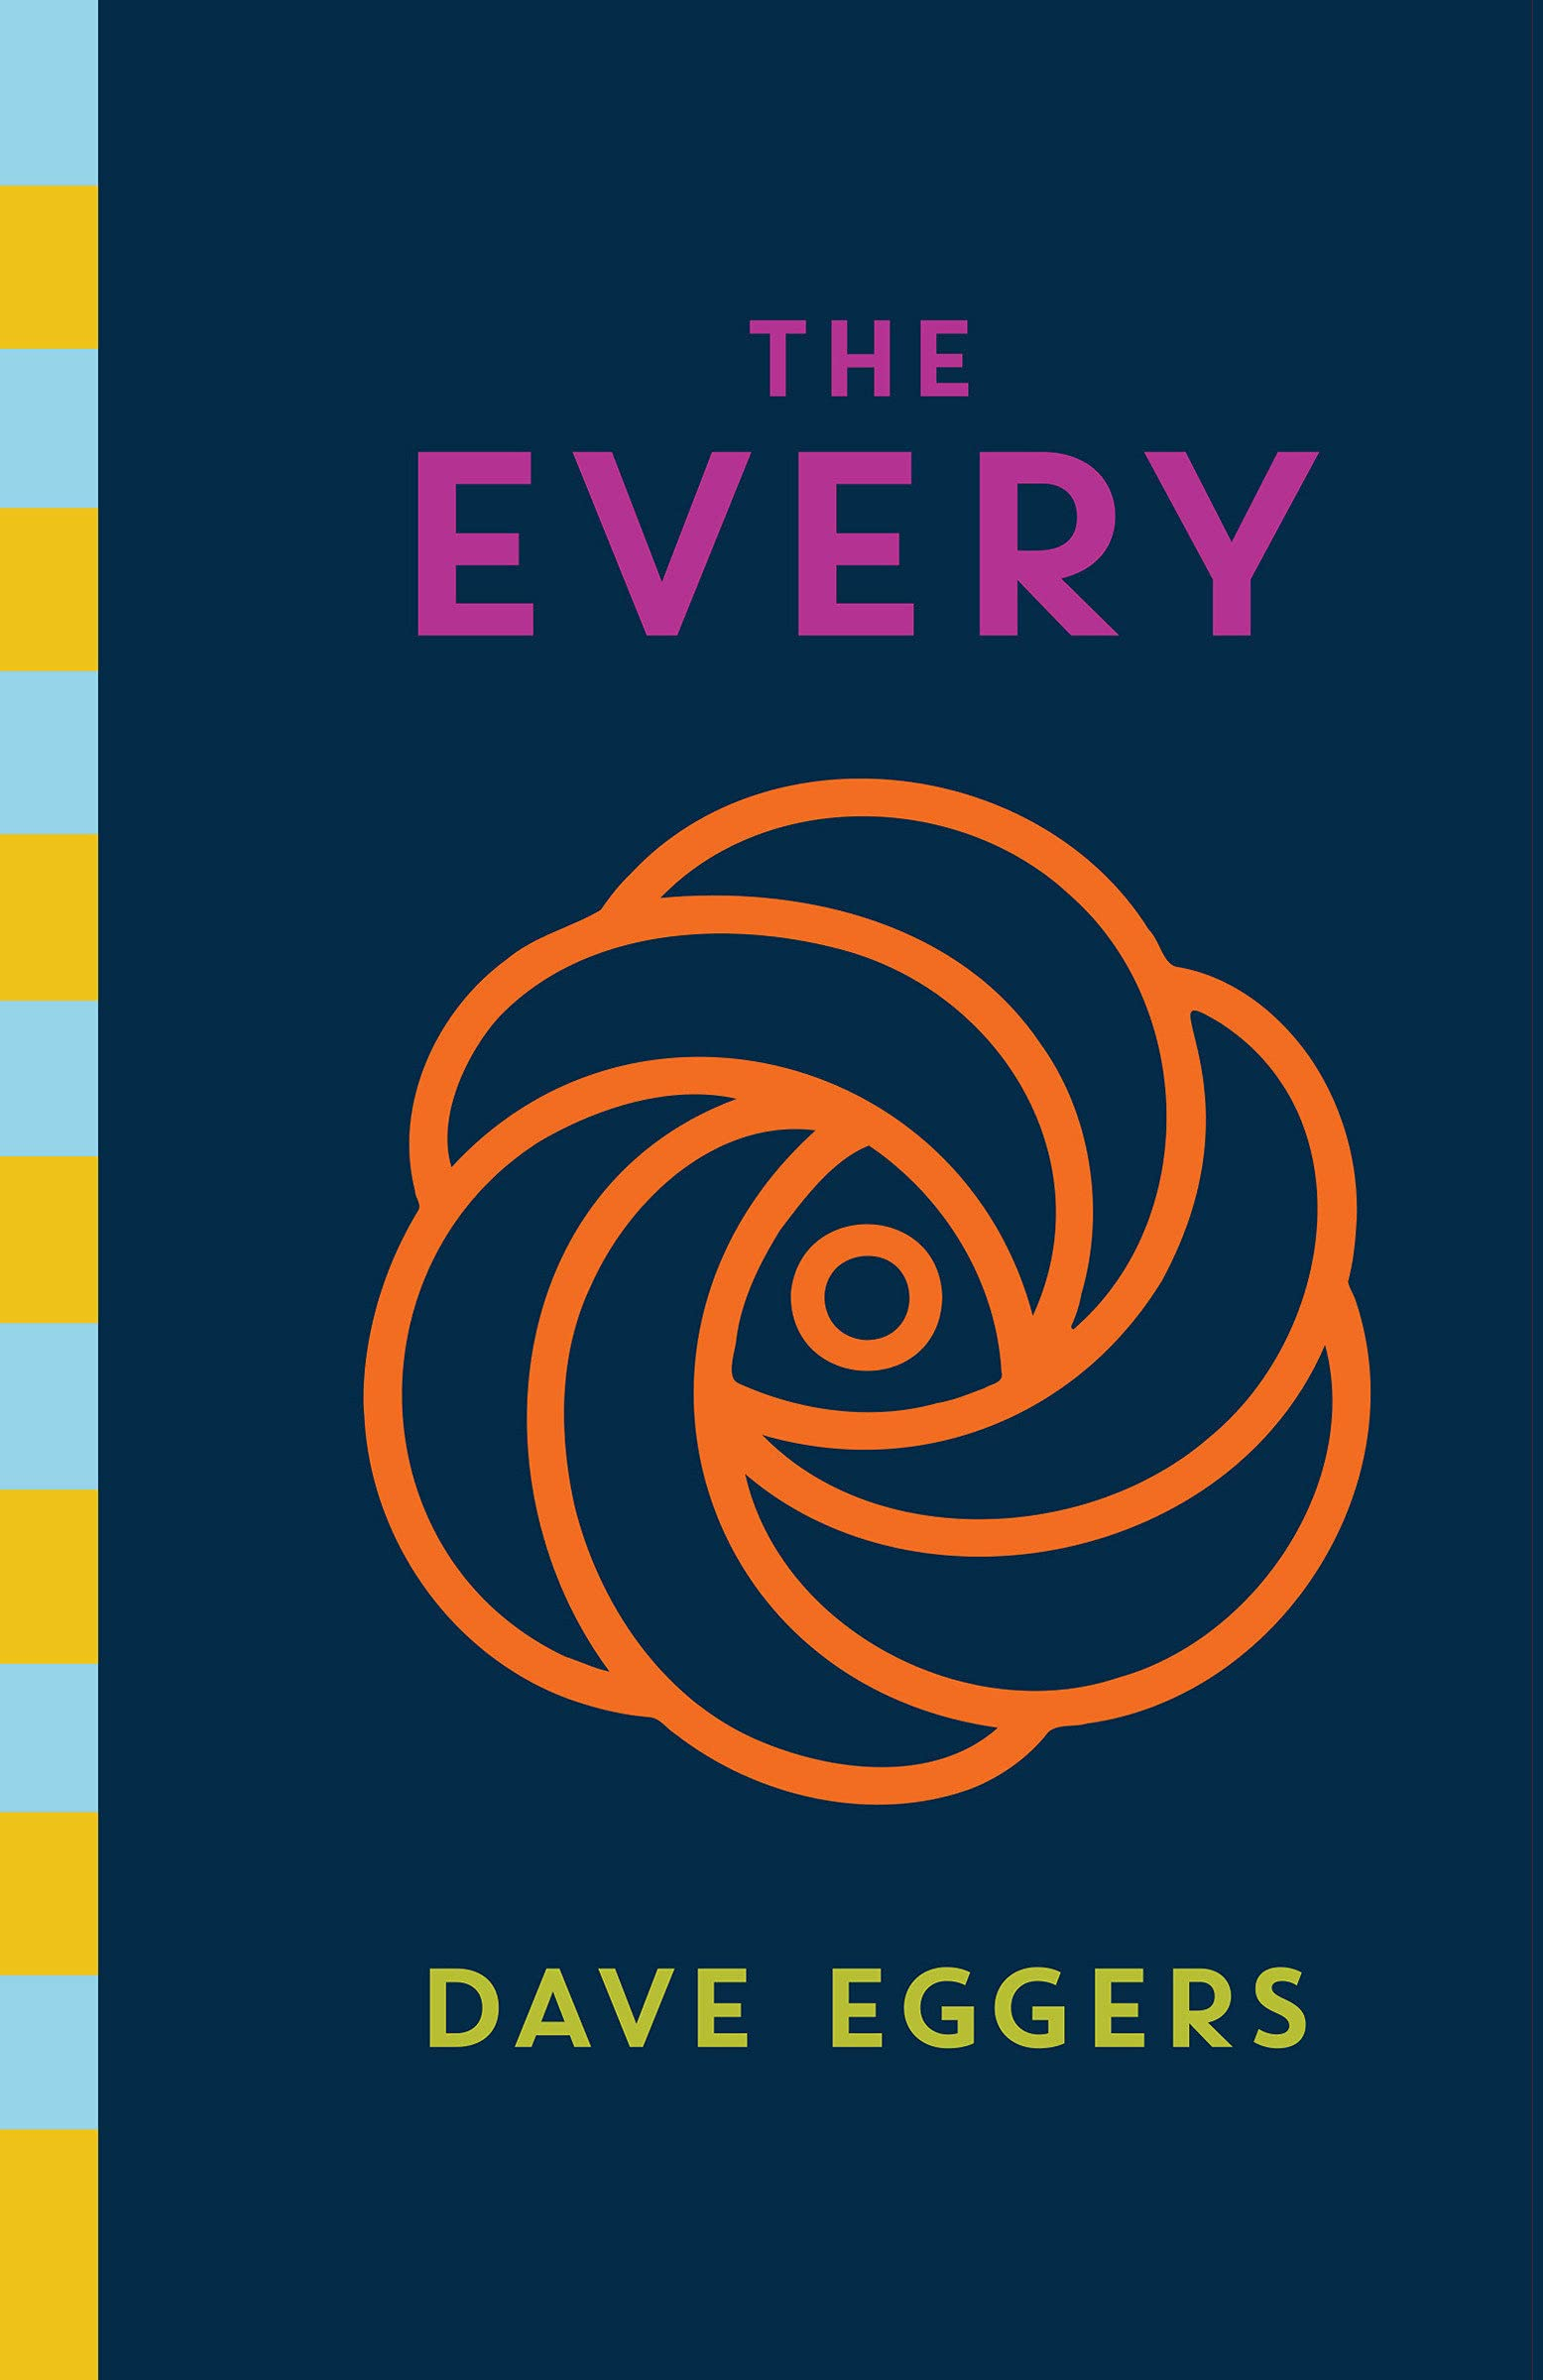 Dave Eggers' new hardcover will be available in indie bookstores only